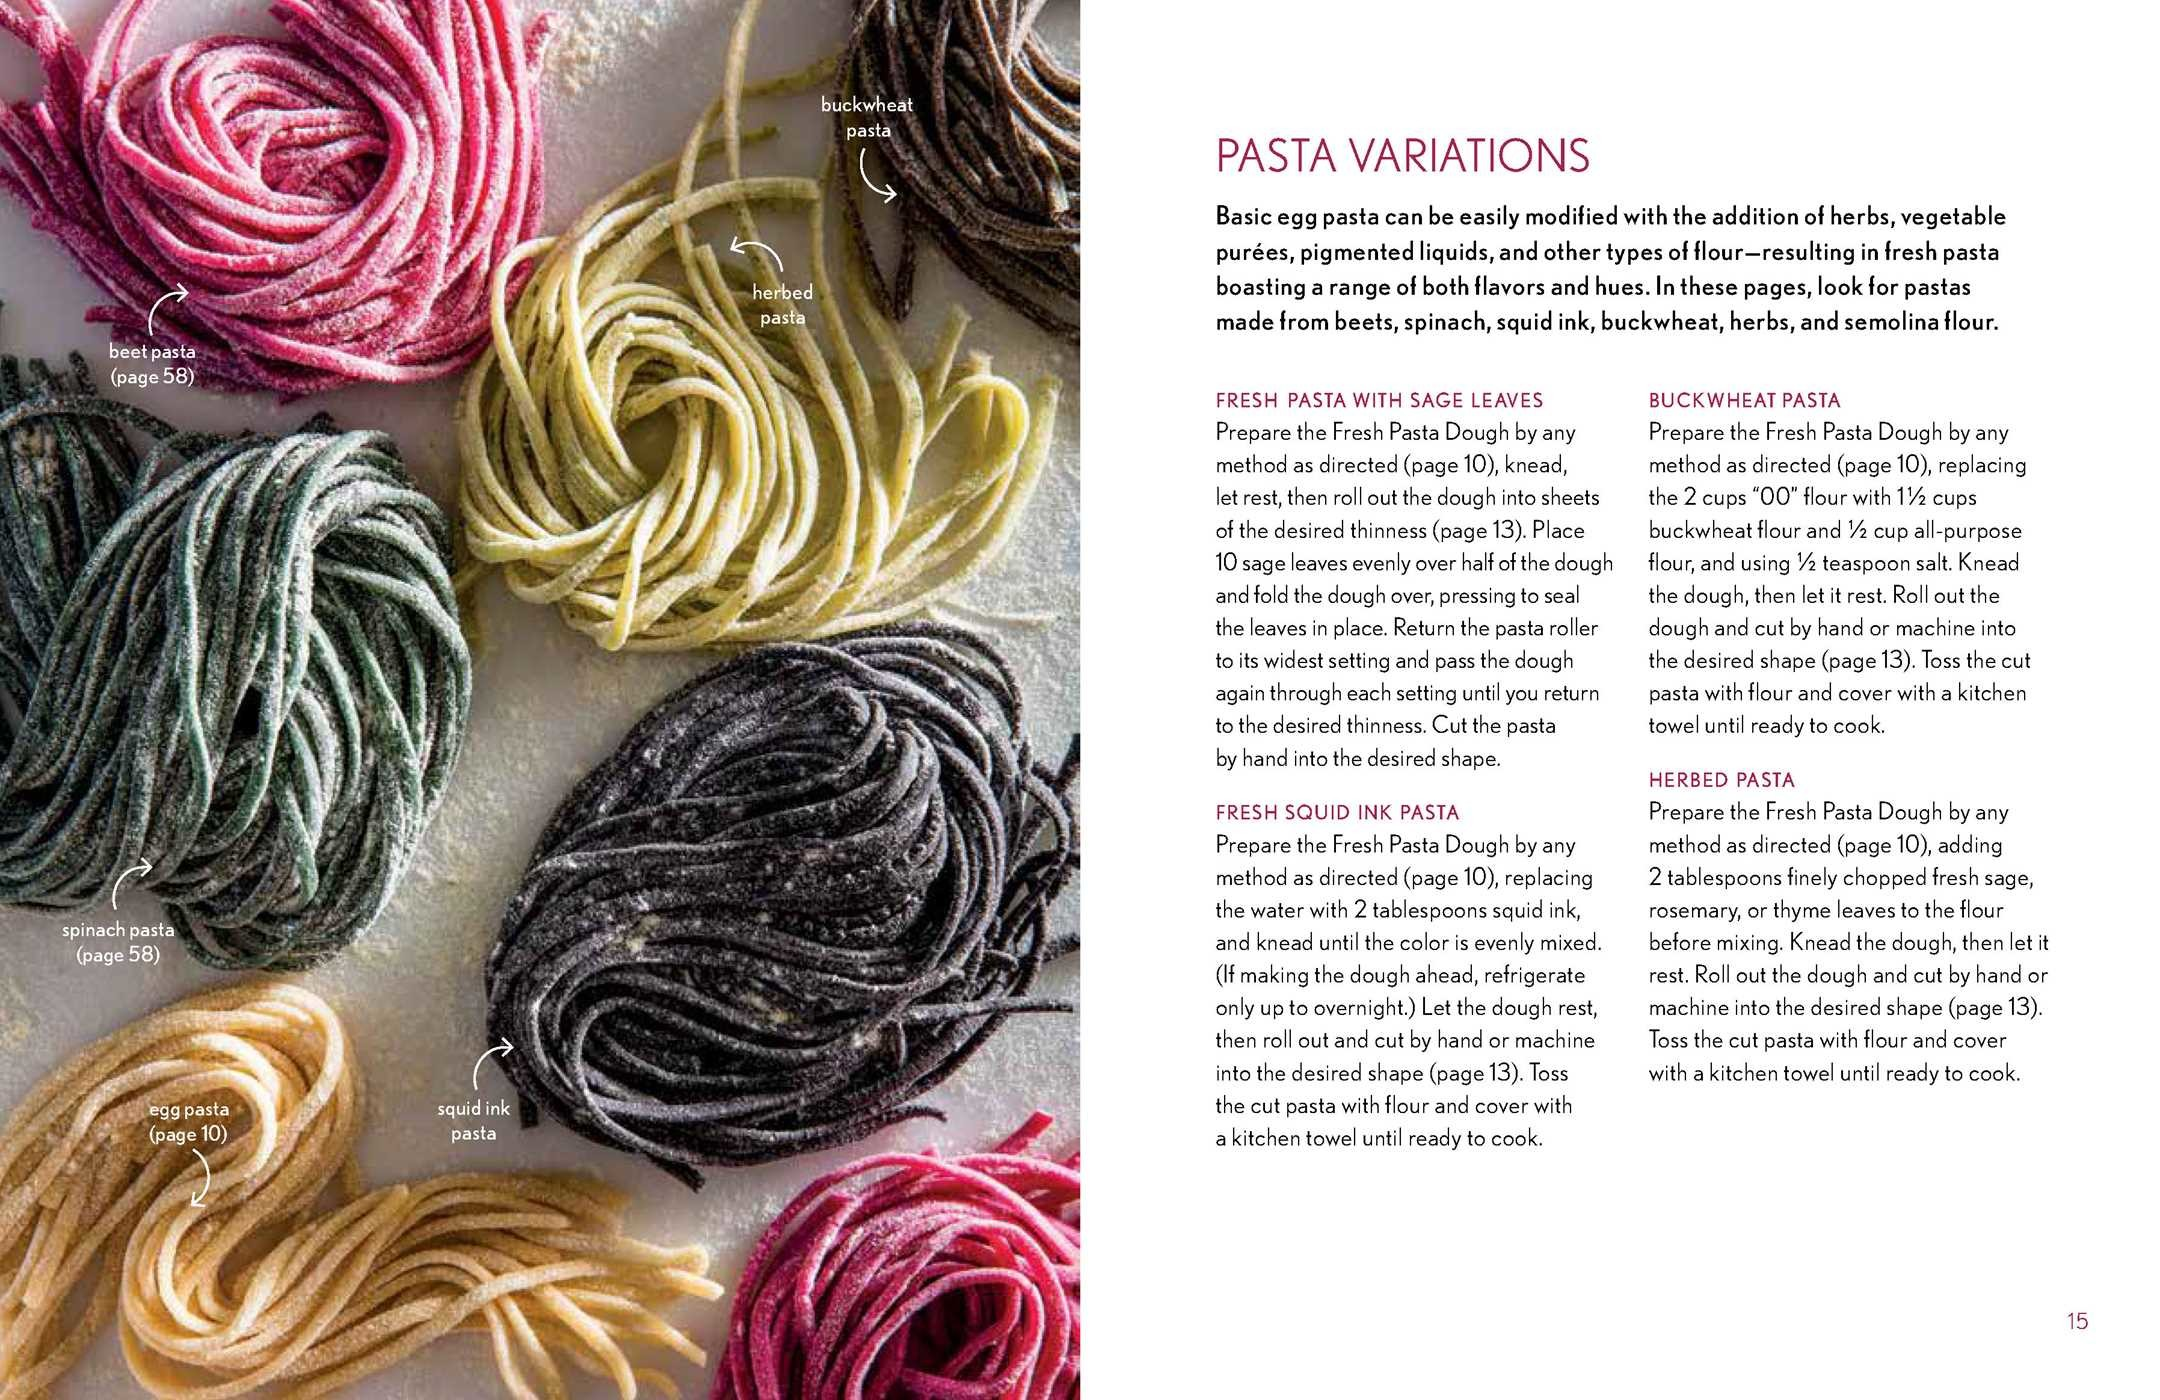 Fresh pasta cookbook 9781681884004.in05